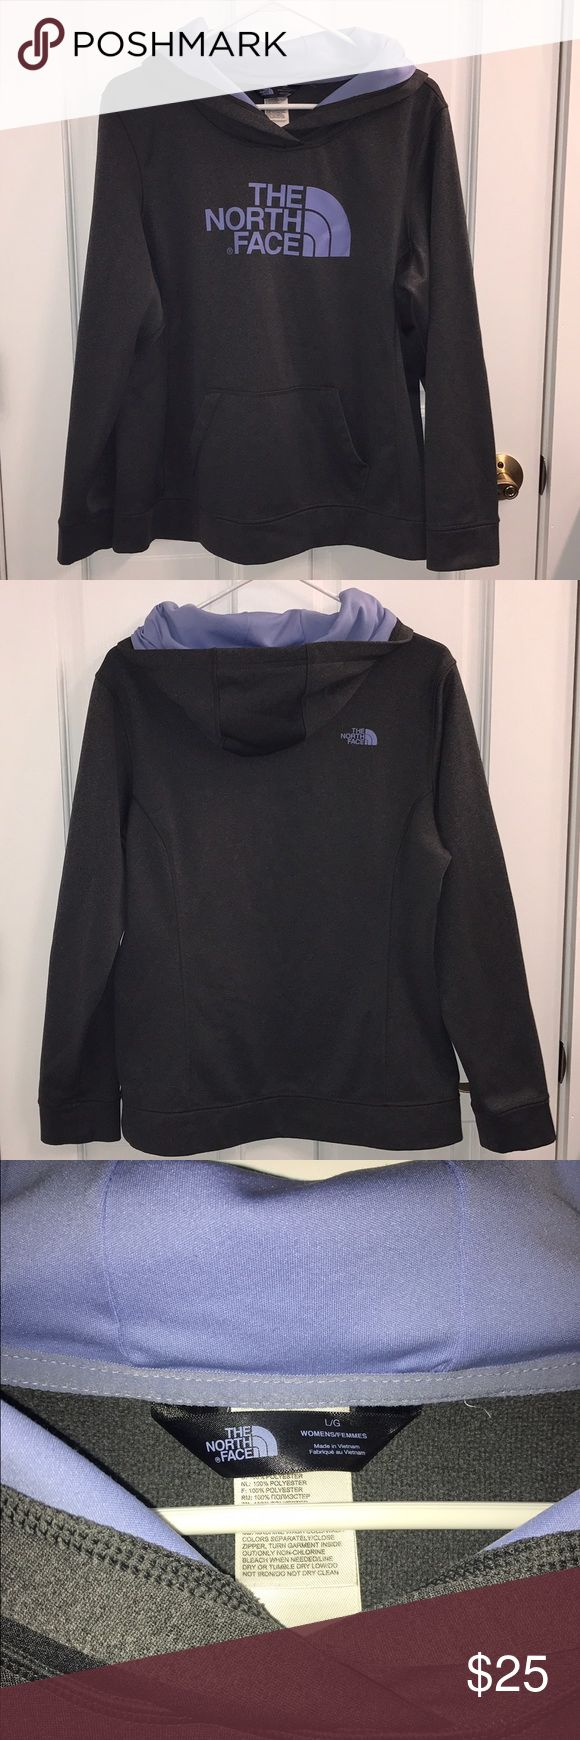 The North Face Women's Hoodie. Beautiful Grey and Light Purple Women's TNF Hoodie. The North Face Tops Sweatshirts & Hoodies